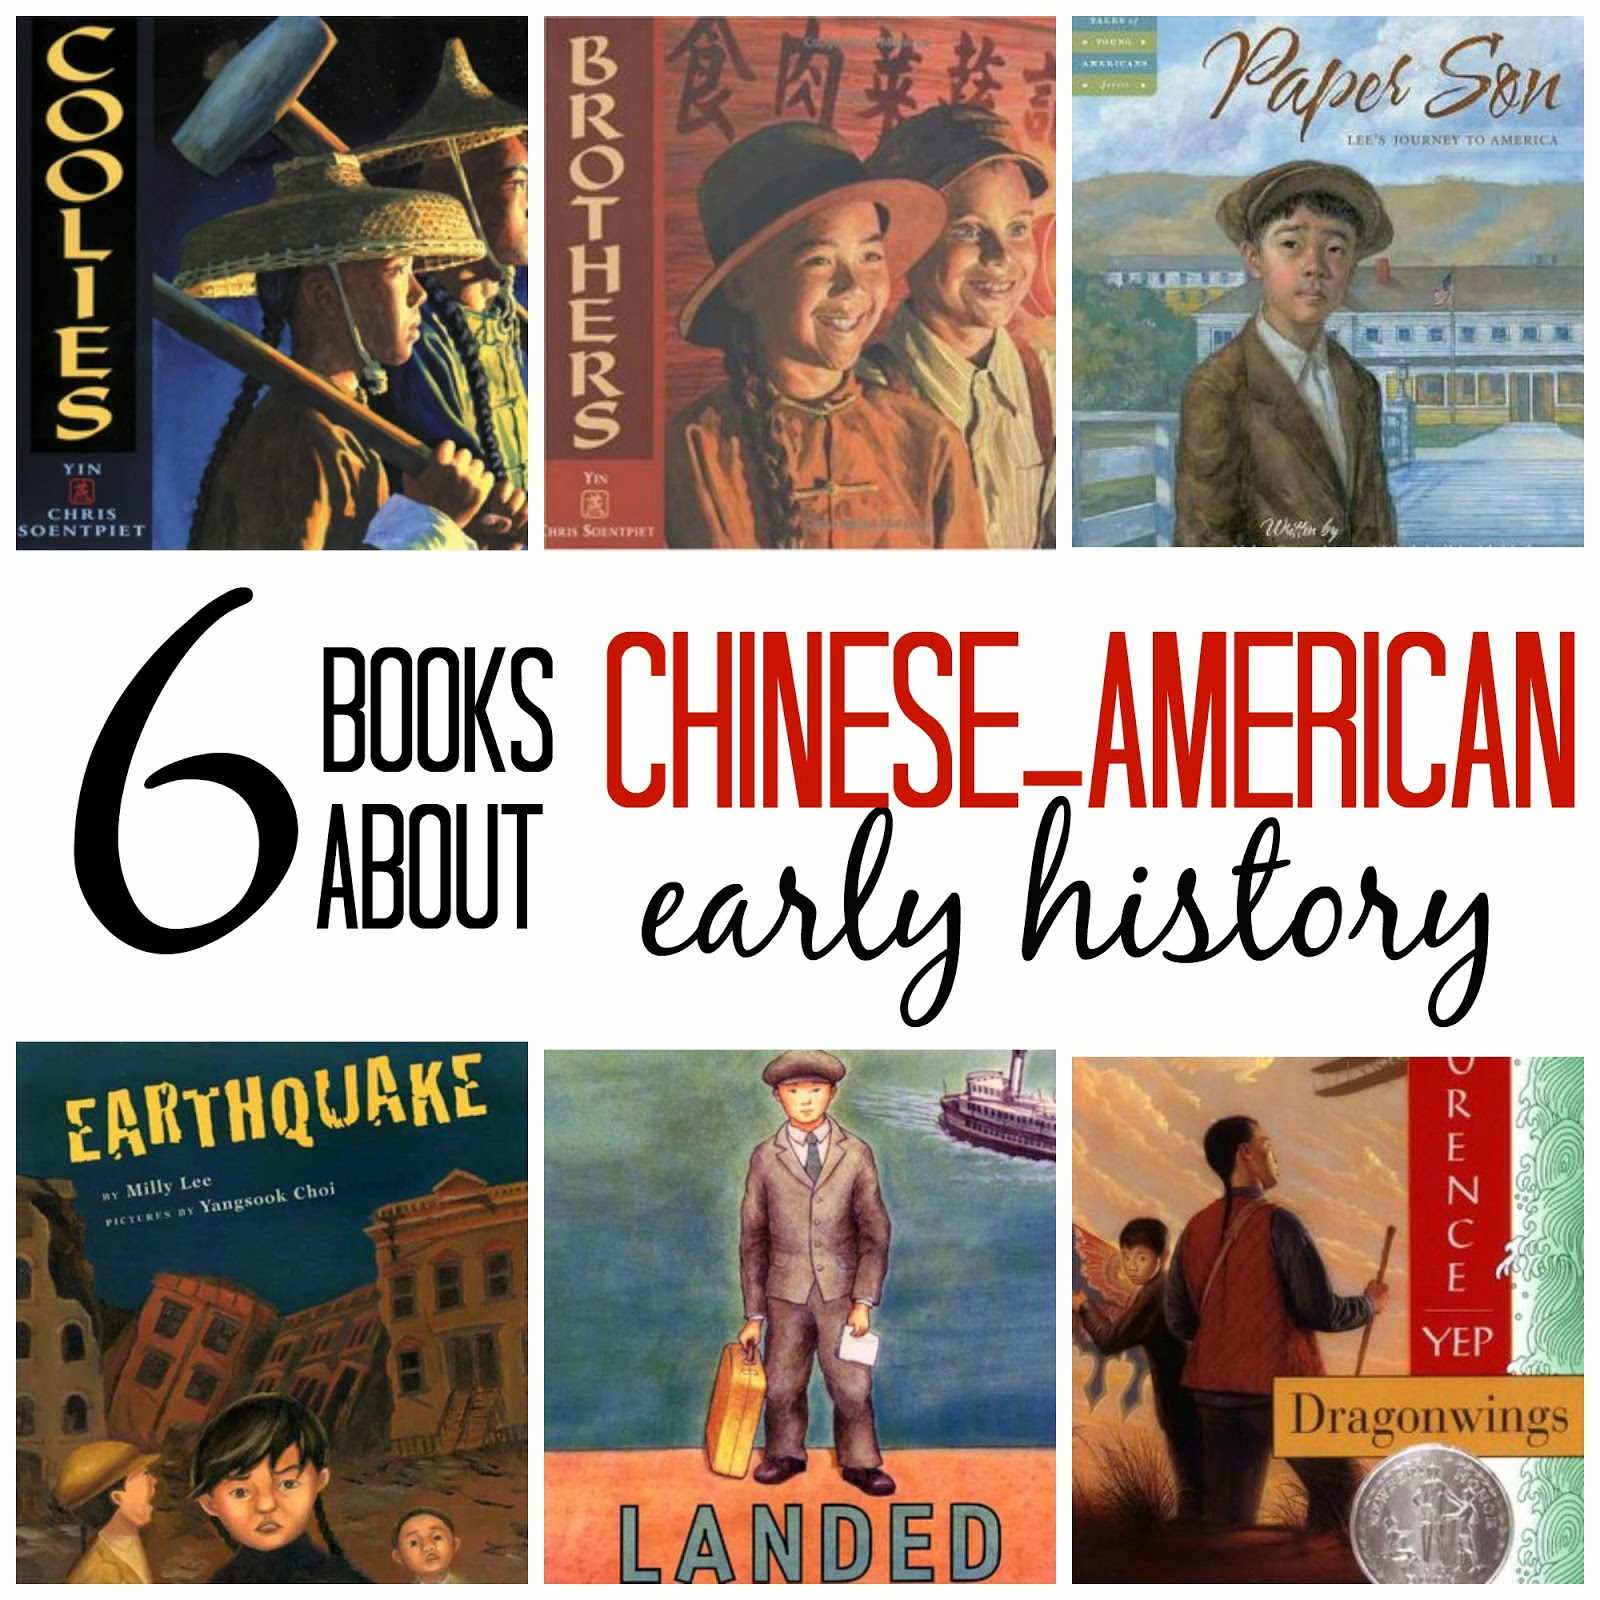 chinese americans in early america It wasn't easy being chinese american in the early days from exclusionary laws to the racist caricatures that dotted newspaper comic pages, america.